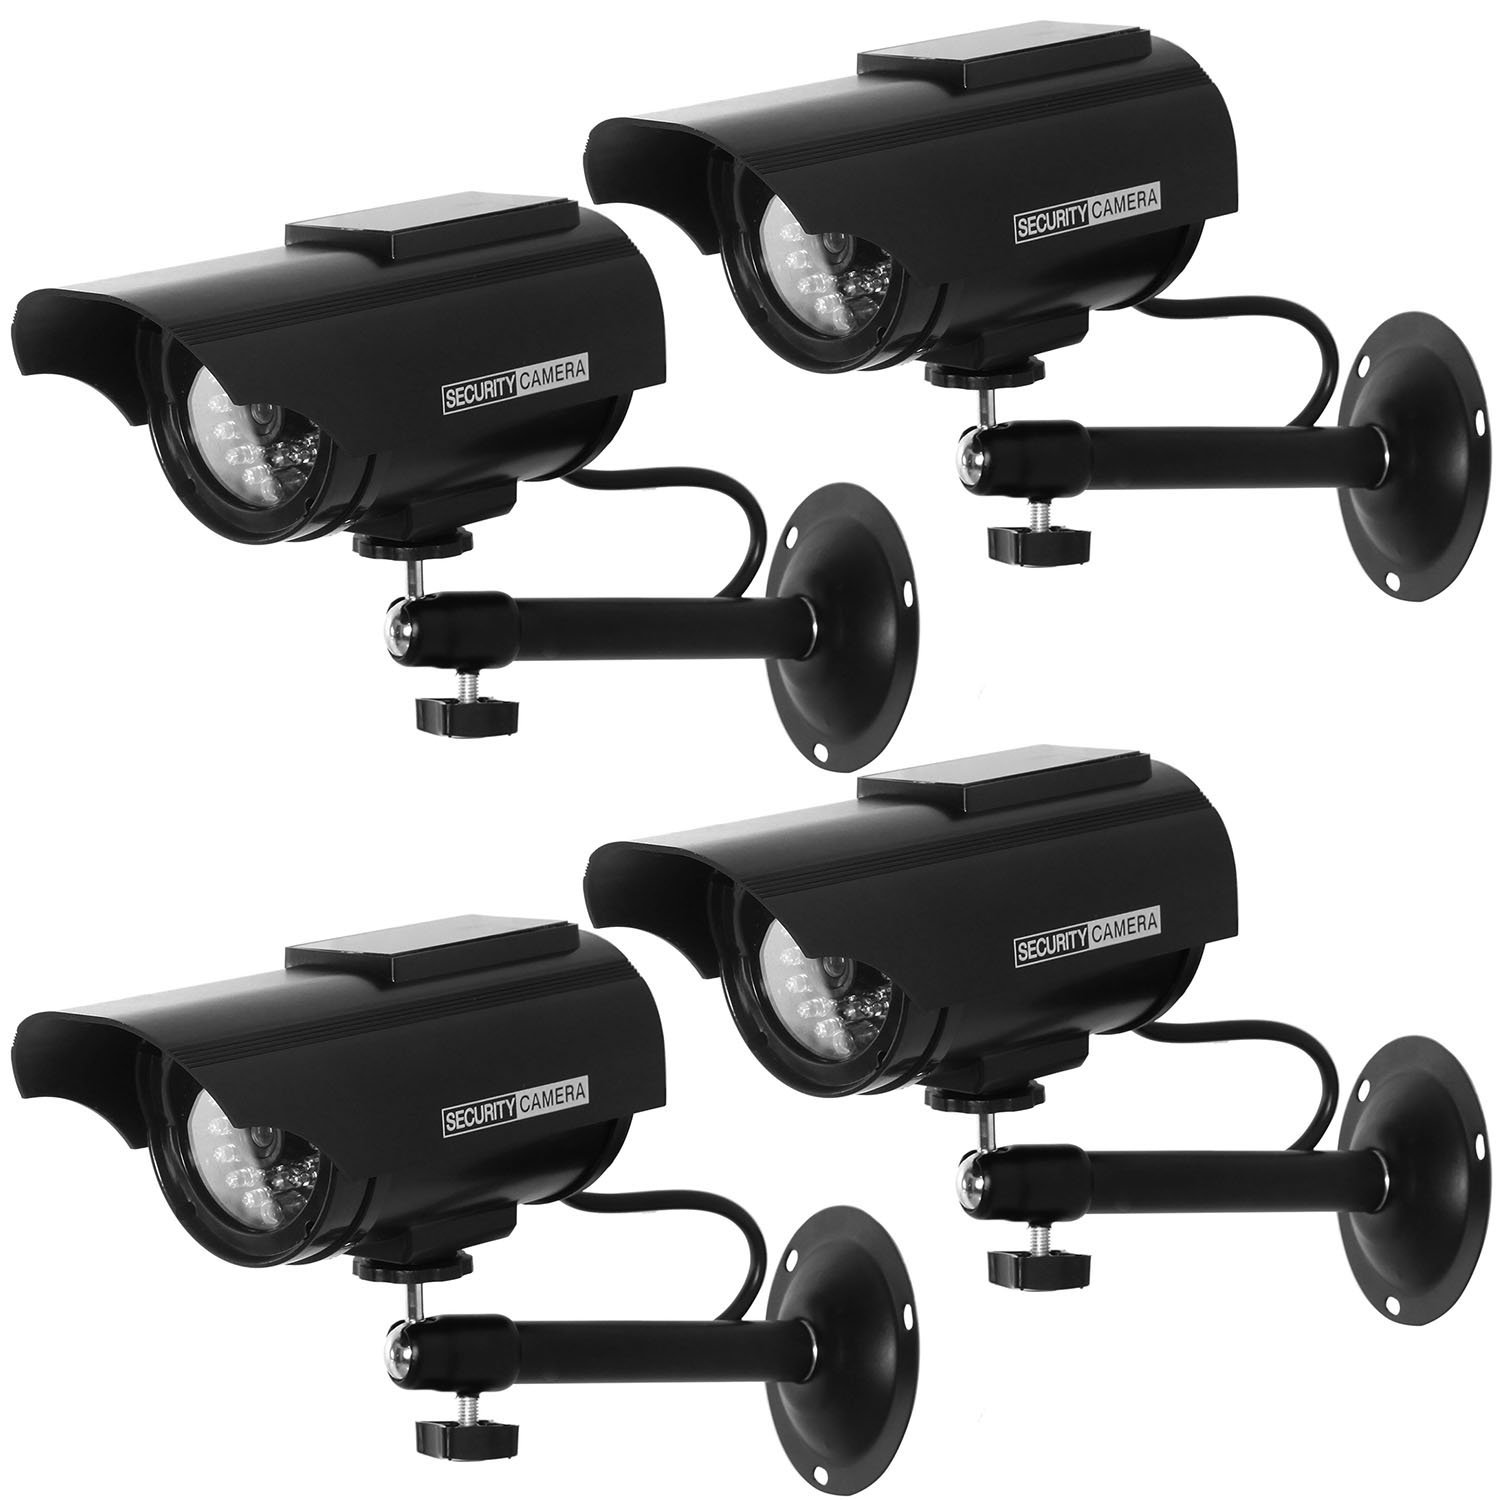 WALI Solar Powered Bullet Dummy Fake Simulated Surveillance Security CCTV Dome Camera Indoor Outdoor with One LED Light, Warning Security Alert Sticker Decal (SOLTC-B4), 4 Packs, Black